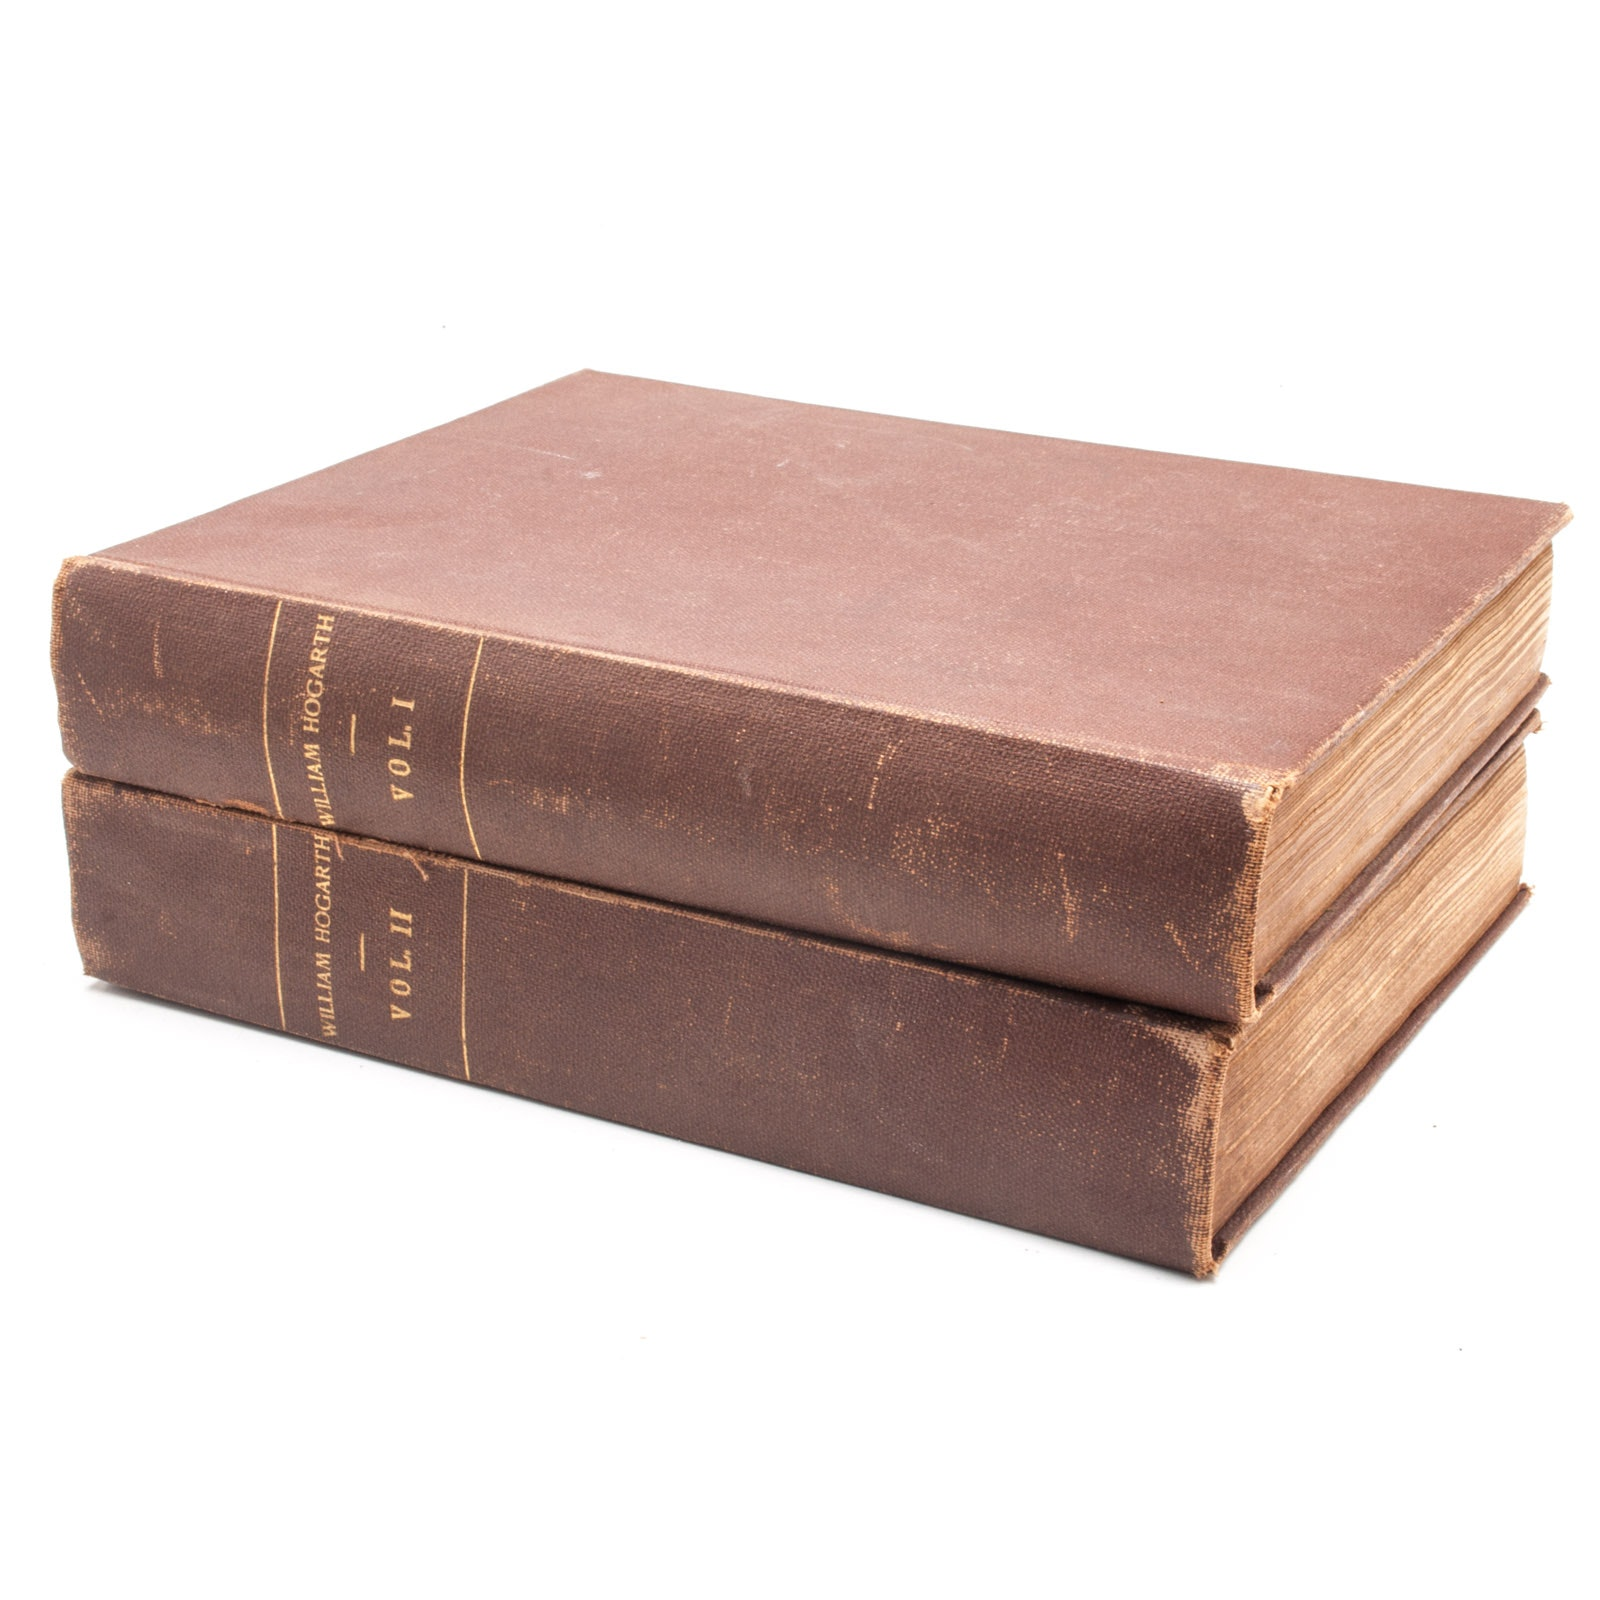 Pair of Antique Volumes of the Works of William Hogarth